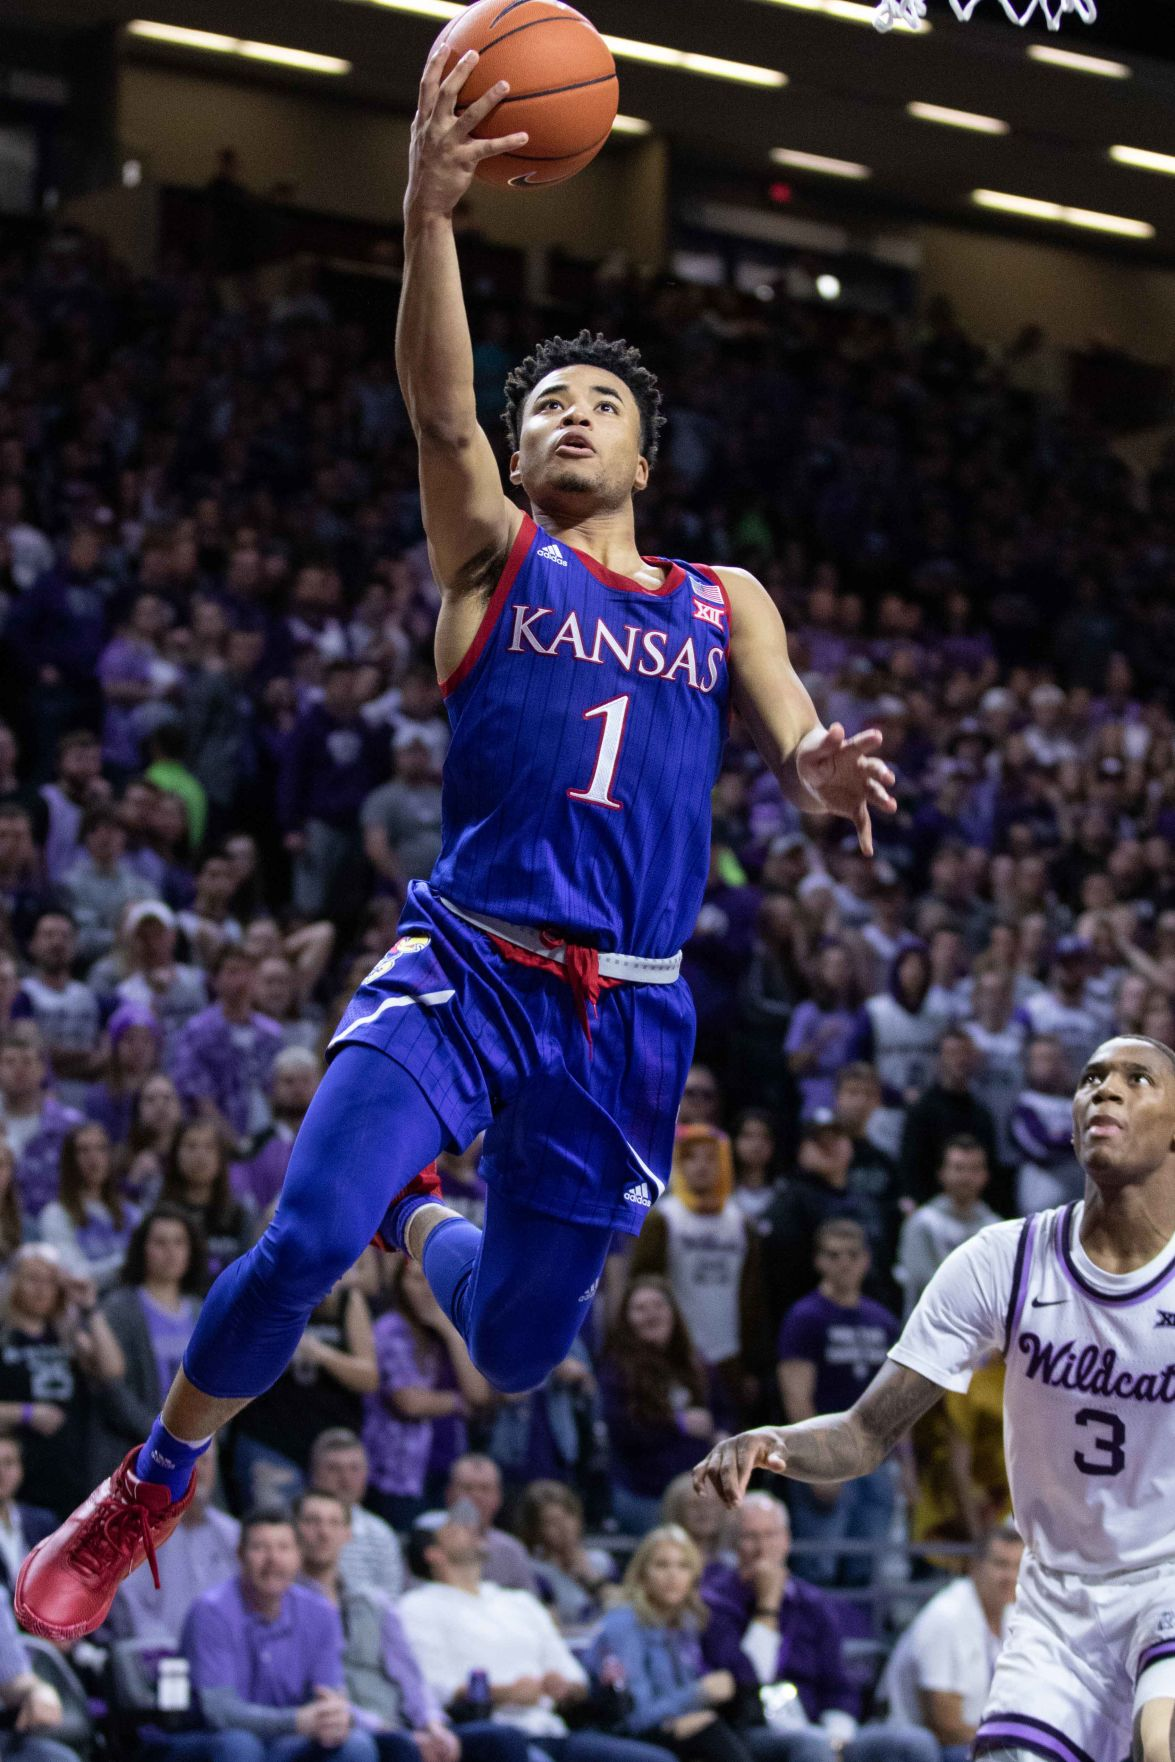 Devon Dotson lifts the basketball above his head as he jumps up toward the rim